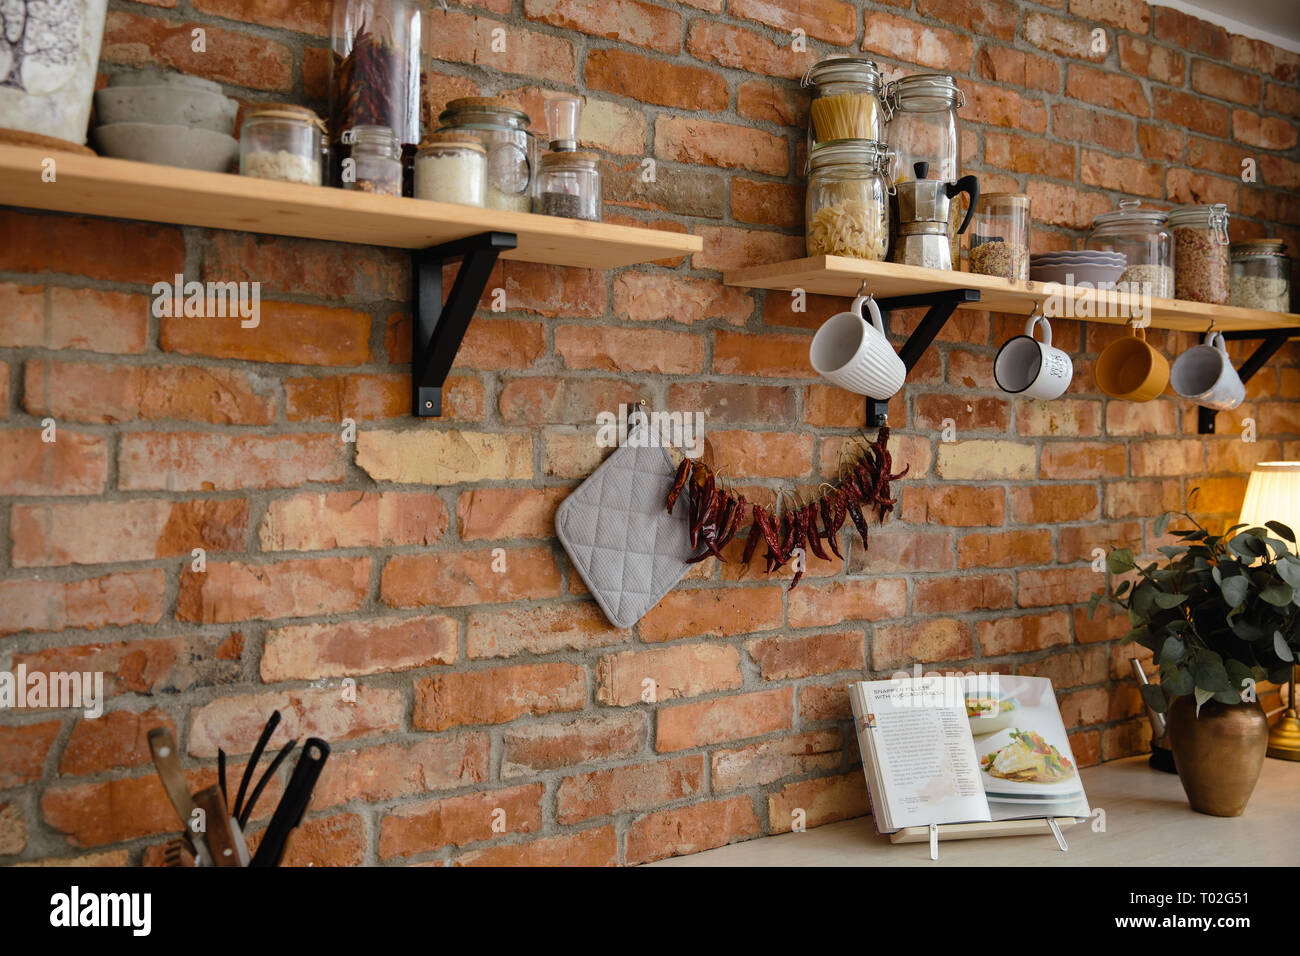 Kitchen loft with designed brick wall and tools hanging on ...